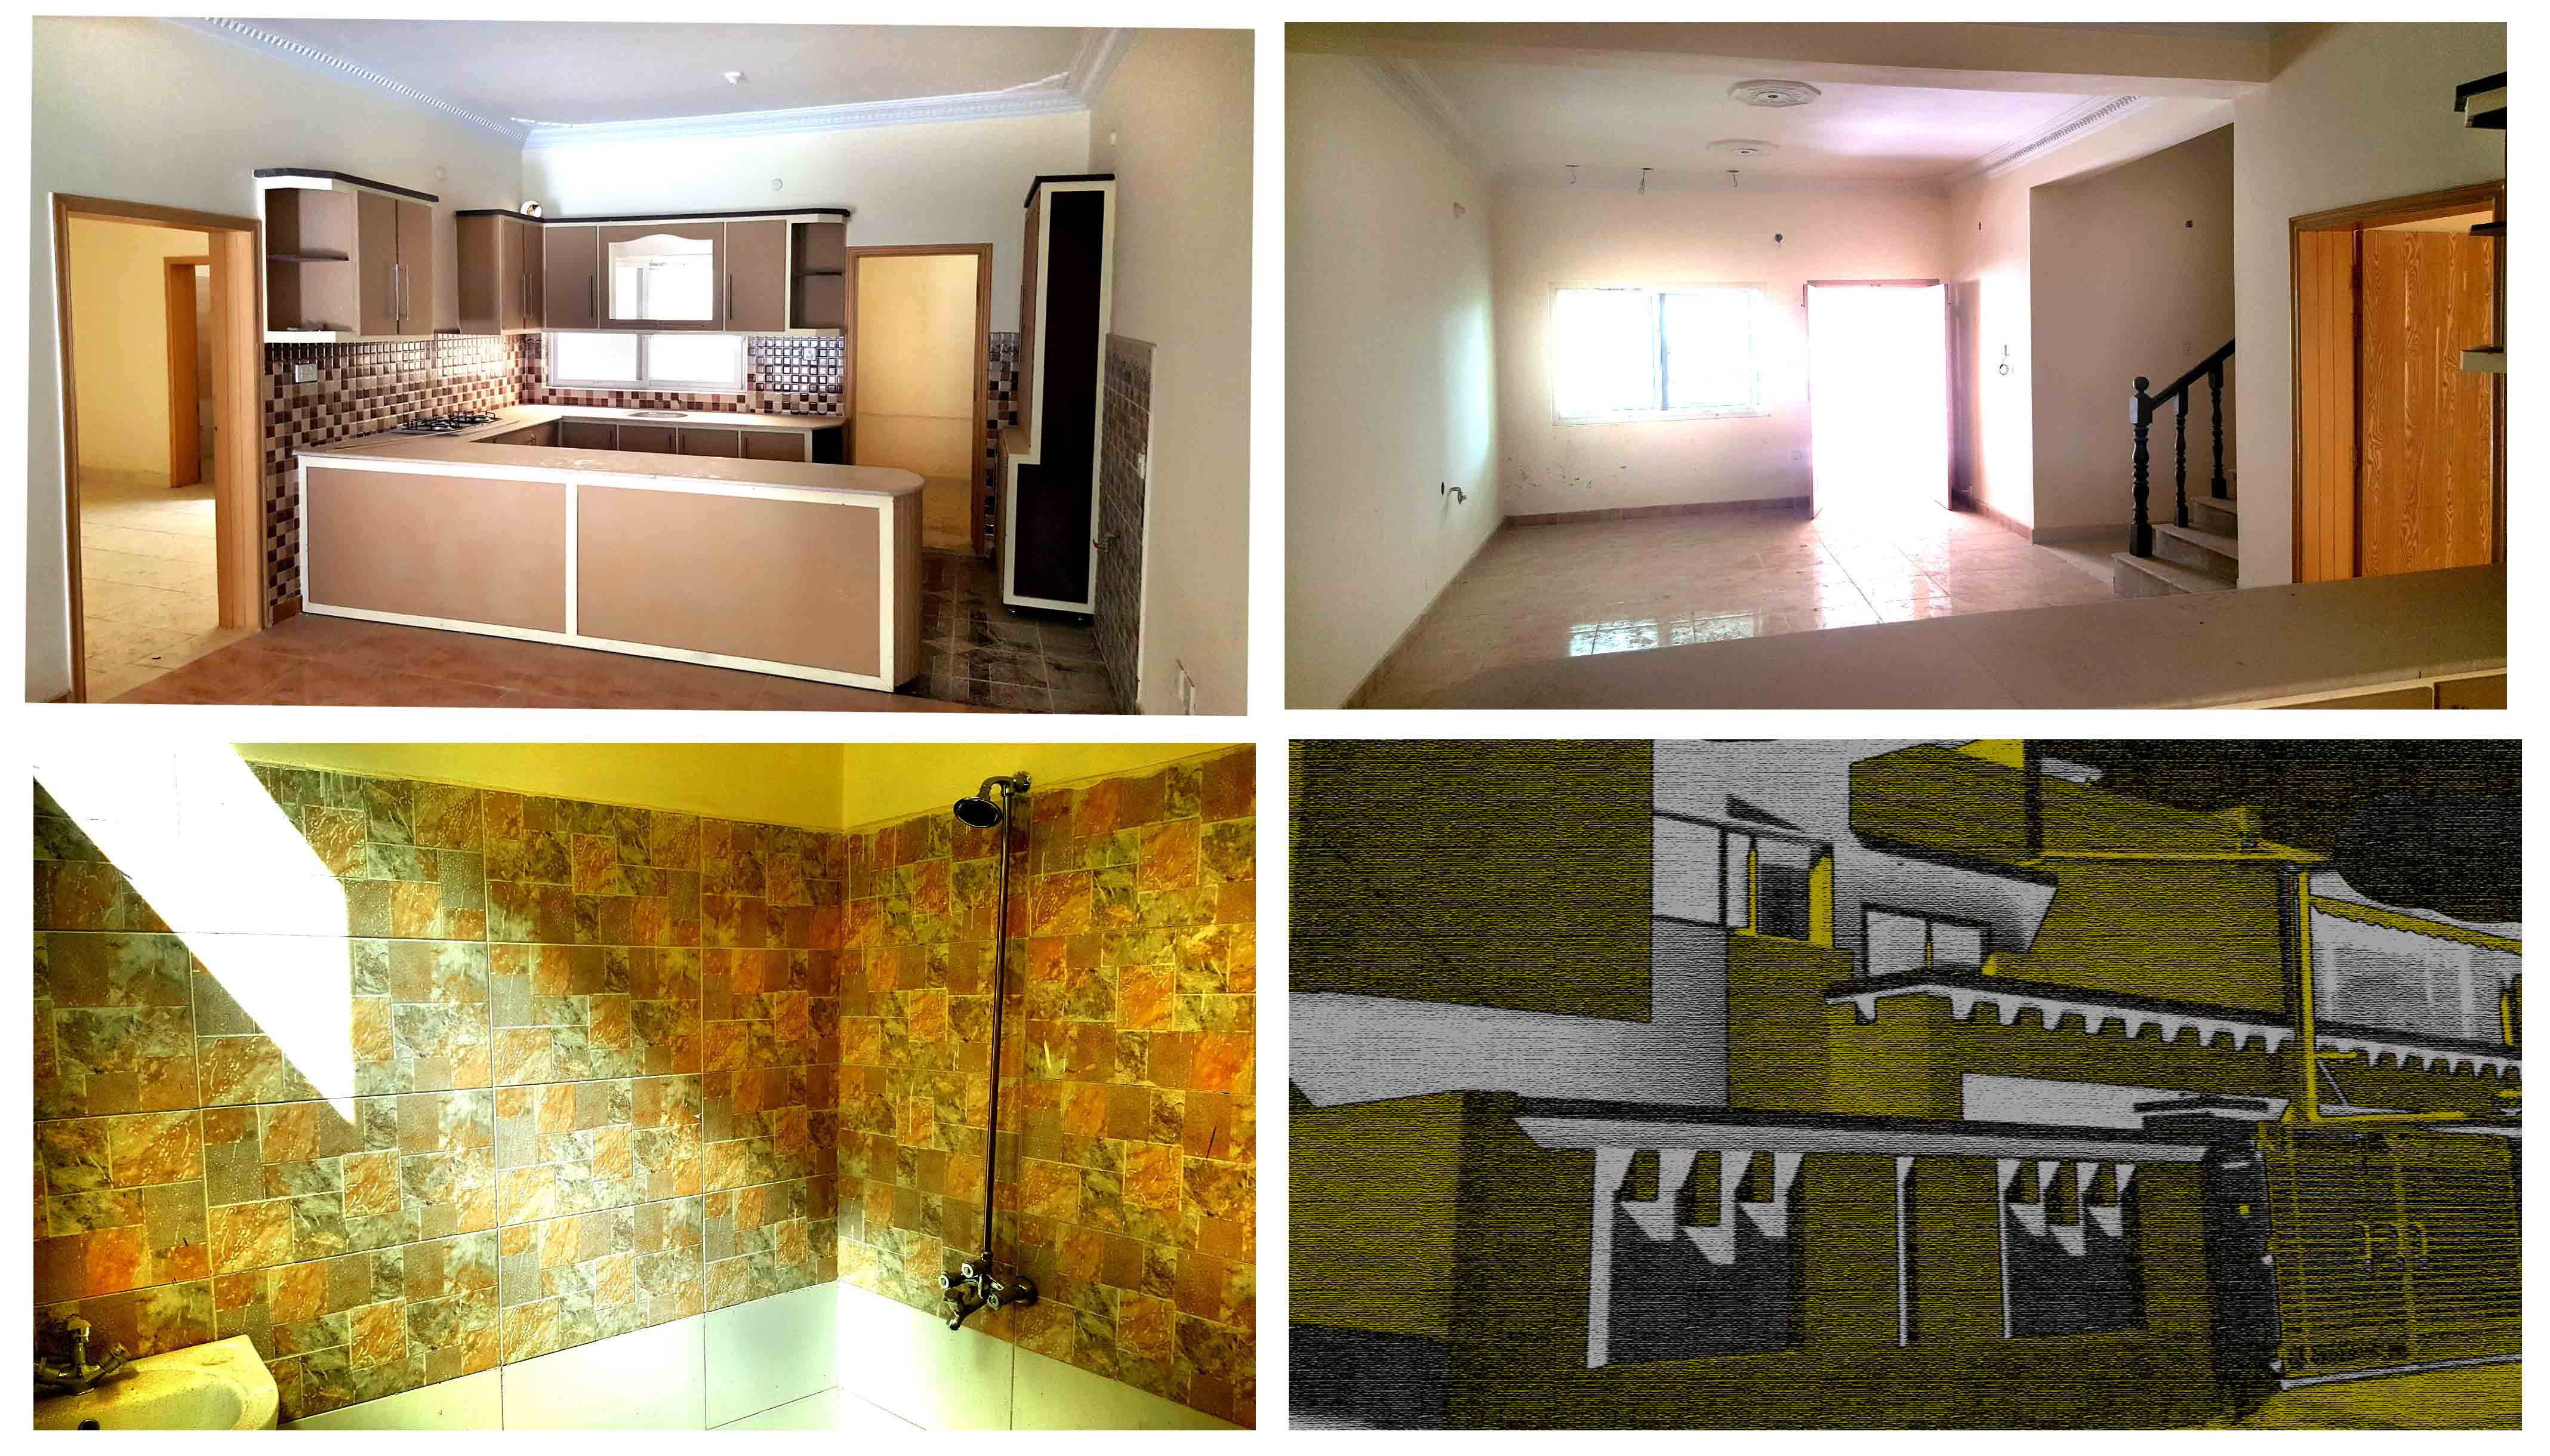 Properties available for sale near samungli road and southern Quetta reqion